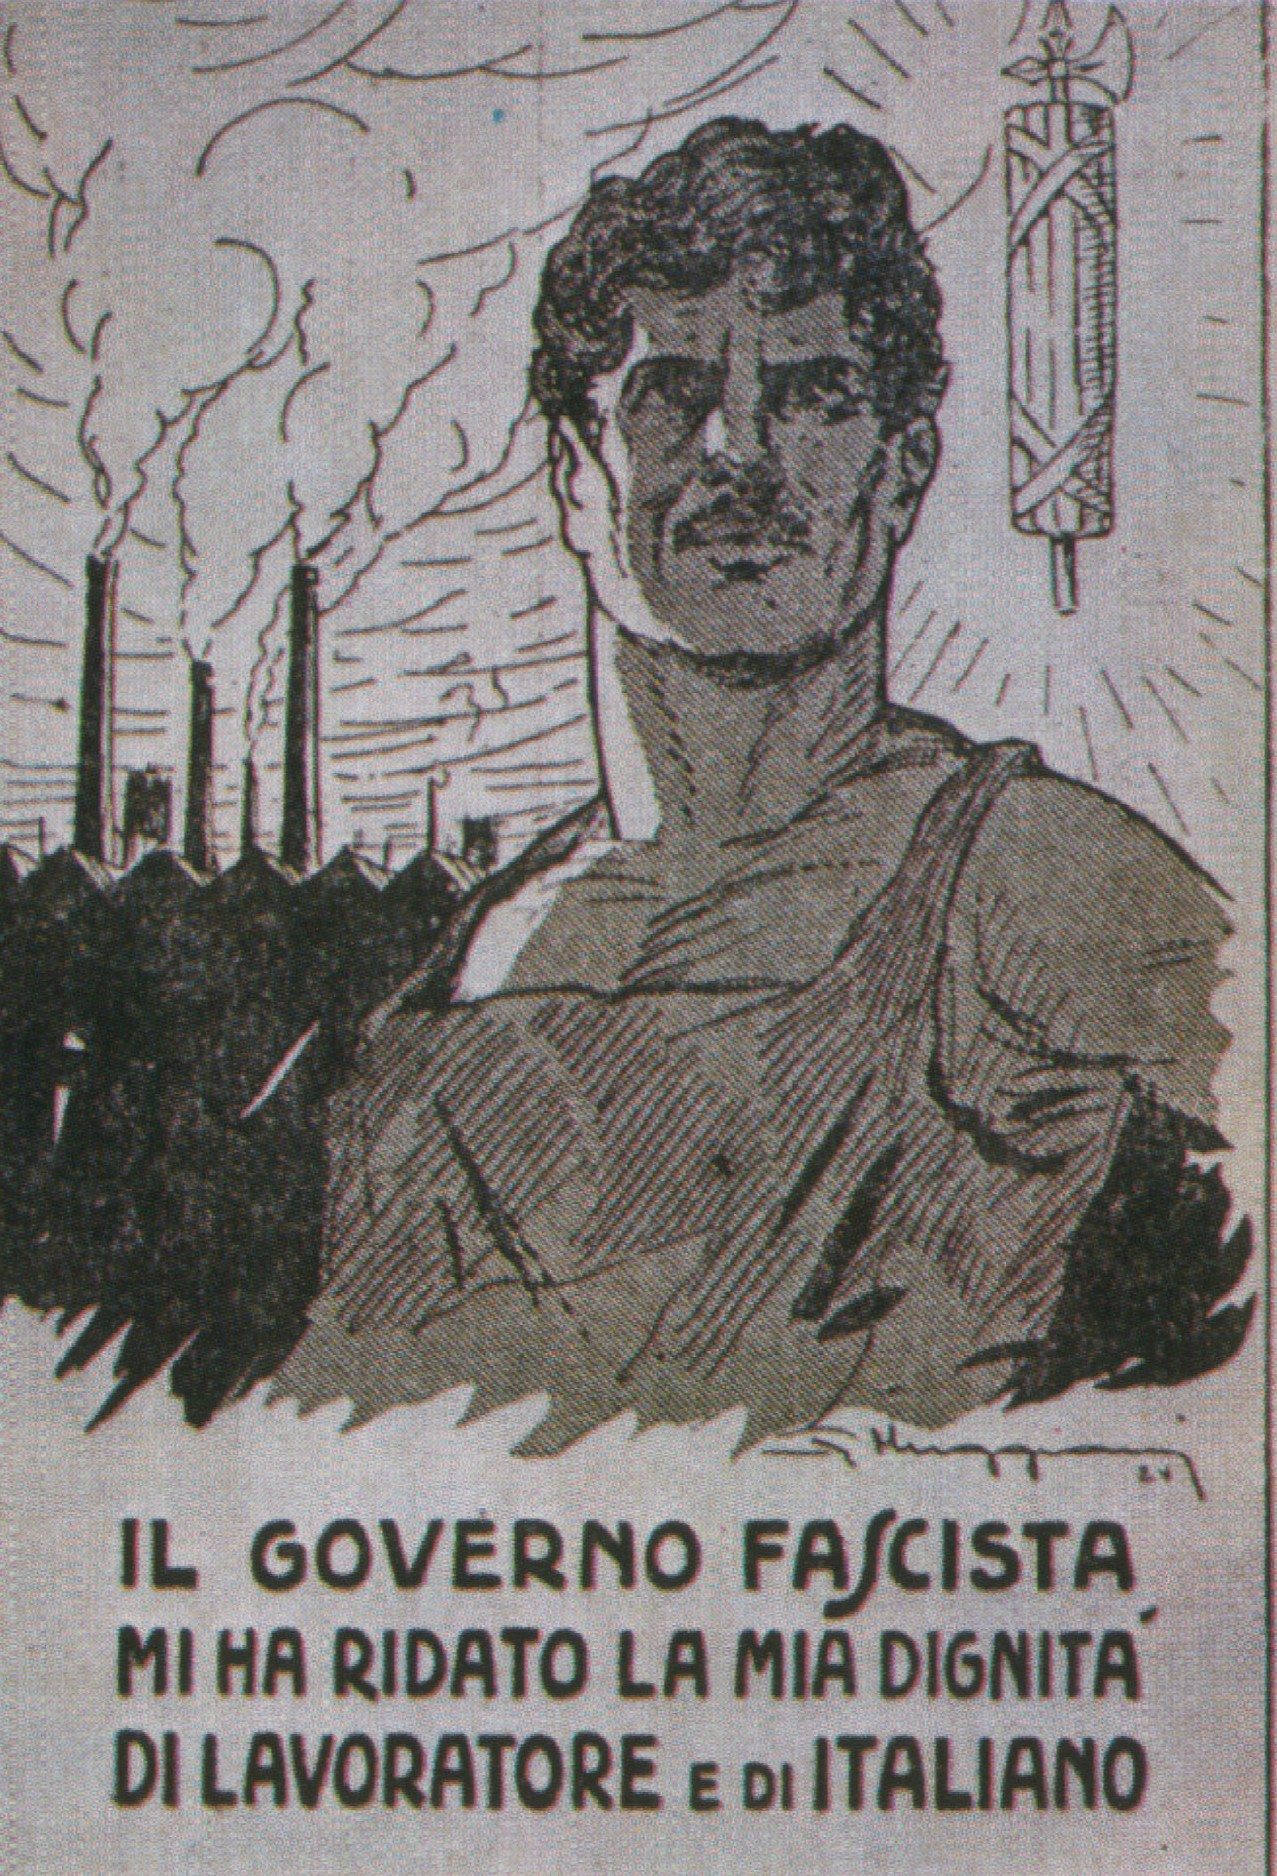 Italy. The fascist government has given me back my dignity as a worker and Italian.